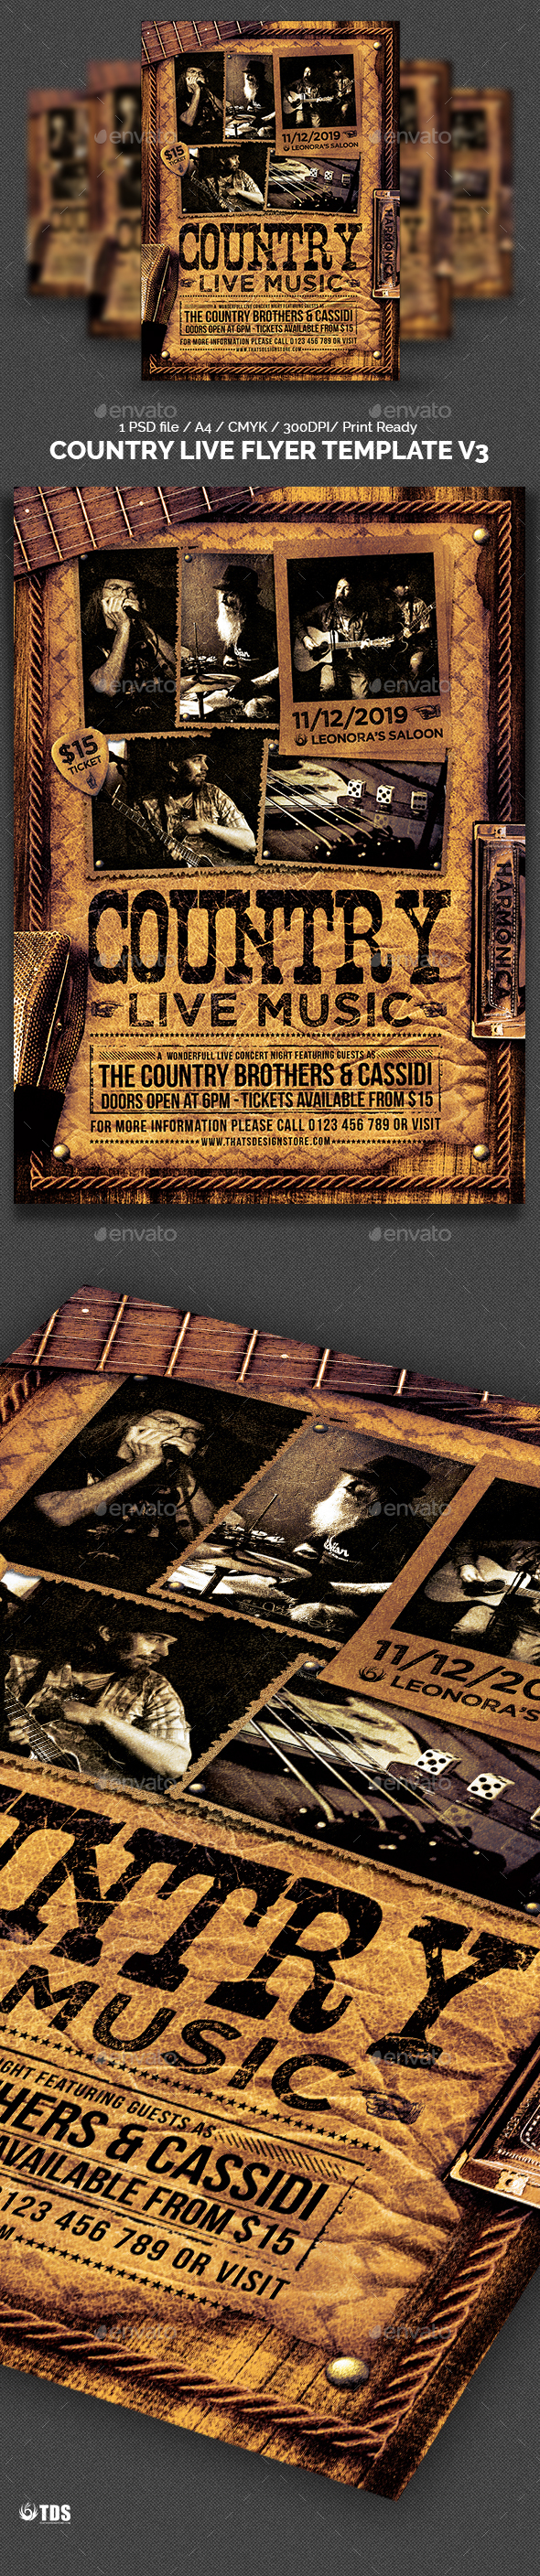 Country Live Flyer Template V3 - Concerts Events